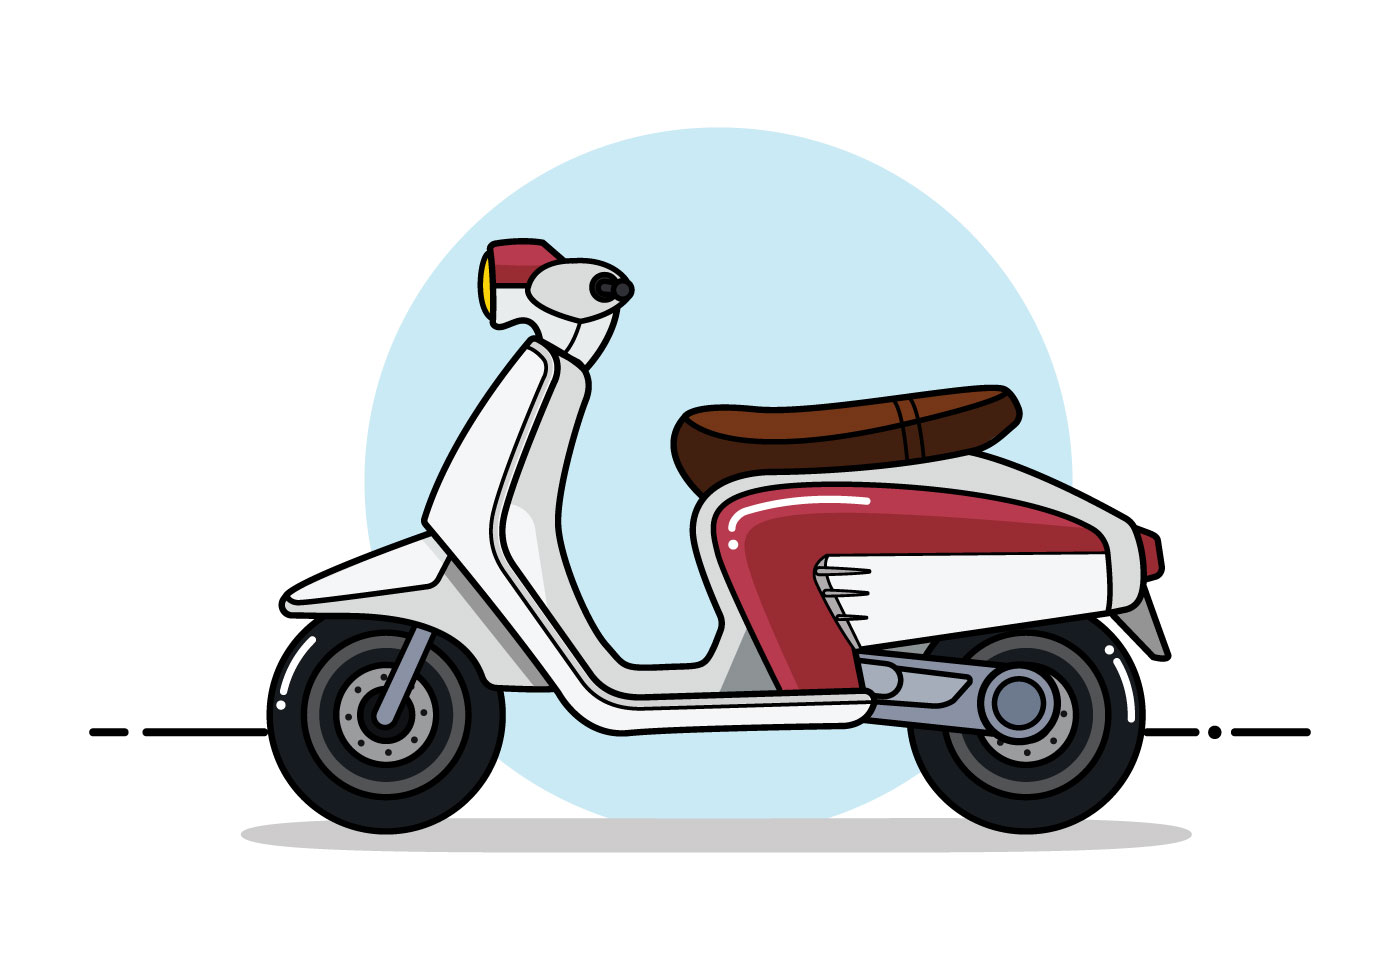 scooter free vector art 2 889 free downloads https www vecteezy com vector art 147969 lambretta scooter flat vector